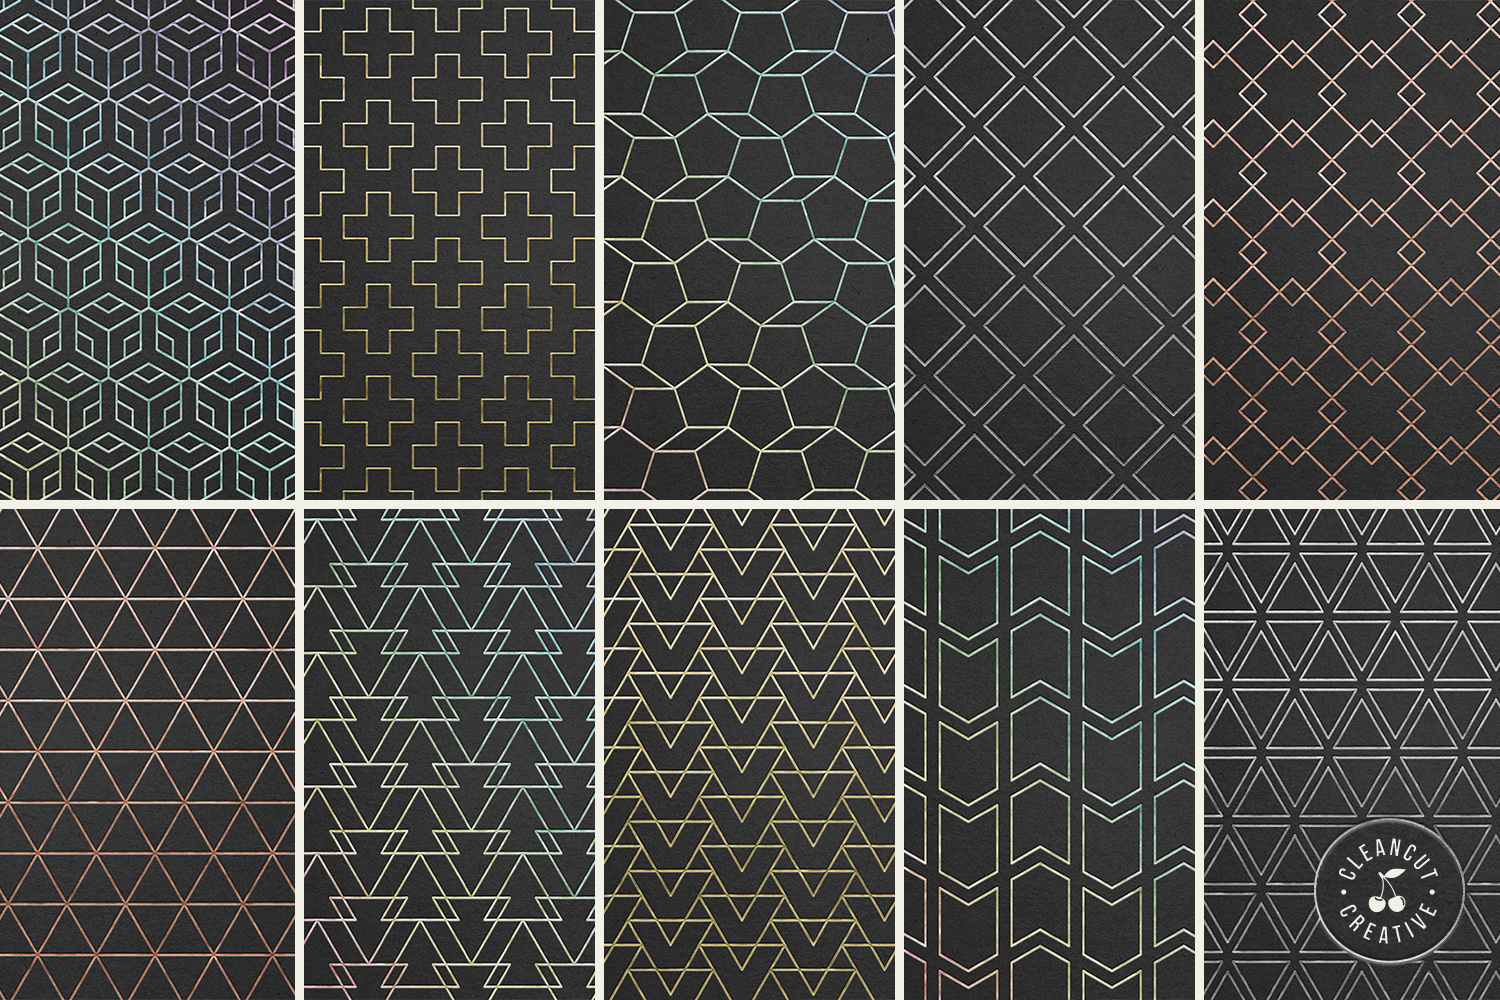 Foil Quill designs SVG   20 Geometric Single Line Patterns example image 3